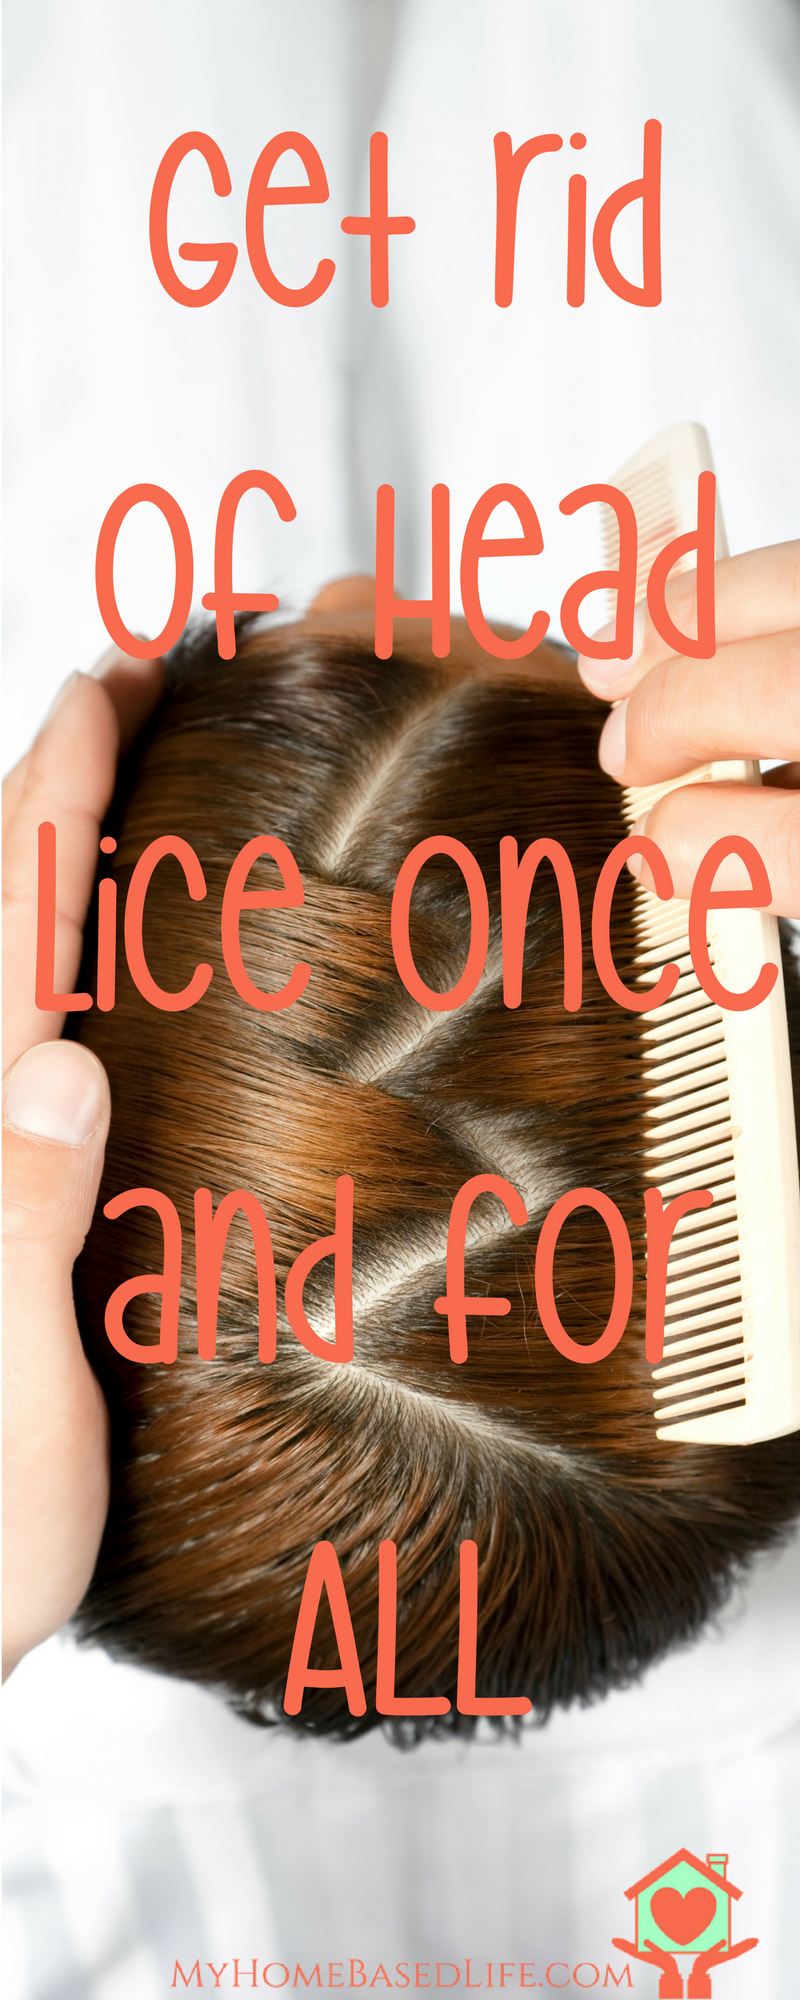 Get rid of Head lice once and for ALL - What you need to know to get rid of them and keep lice away from your home. #parenting #kids #backtoschool #myhomebasedlife | Getting rid of Head Lice | Back To School Hacks | Parenting